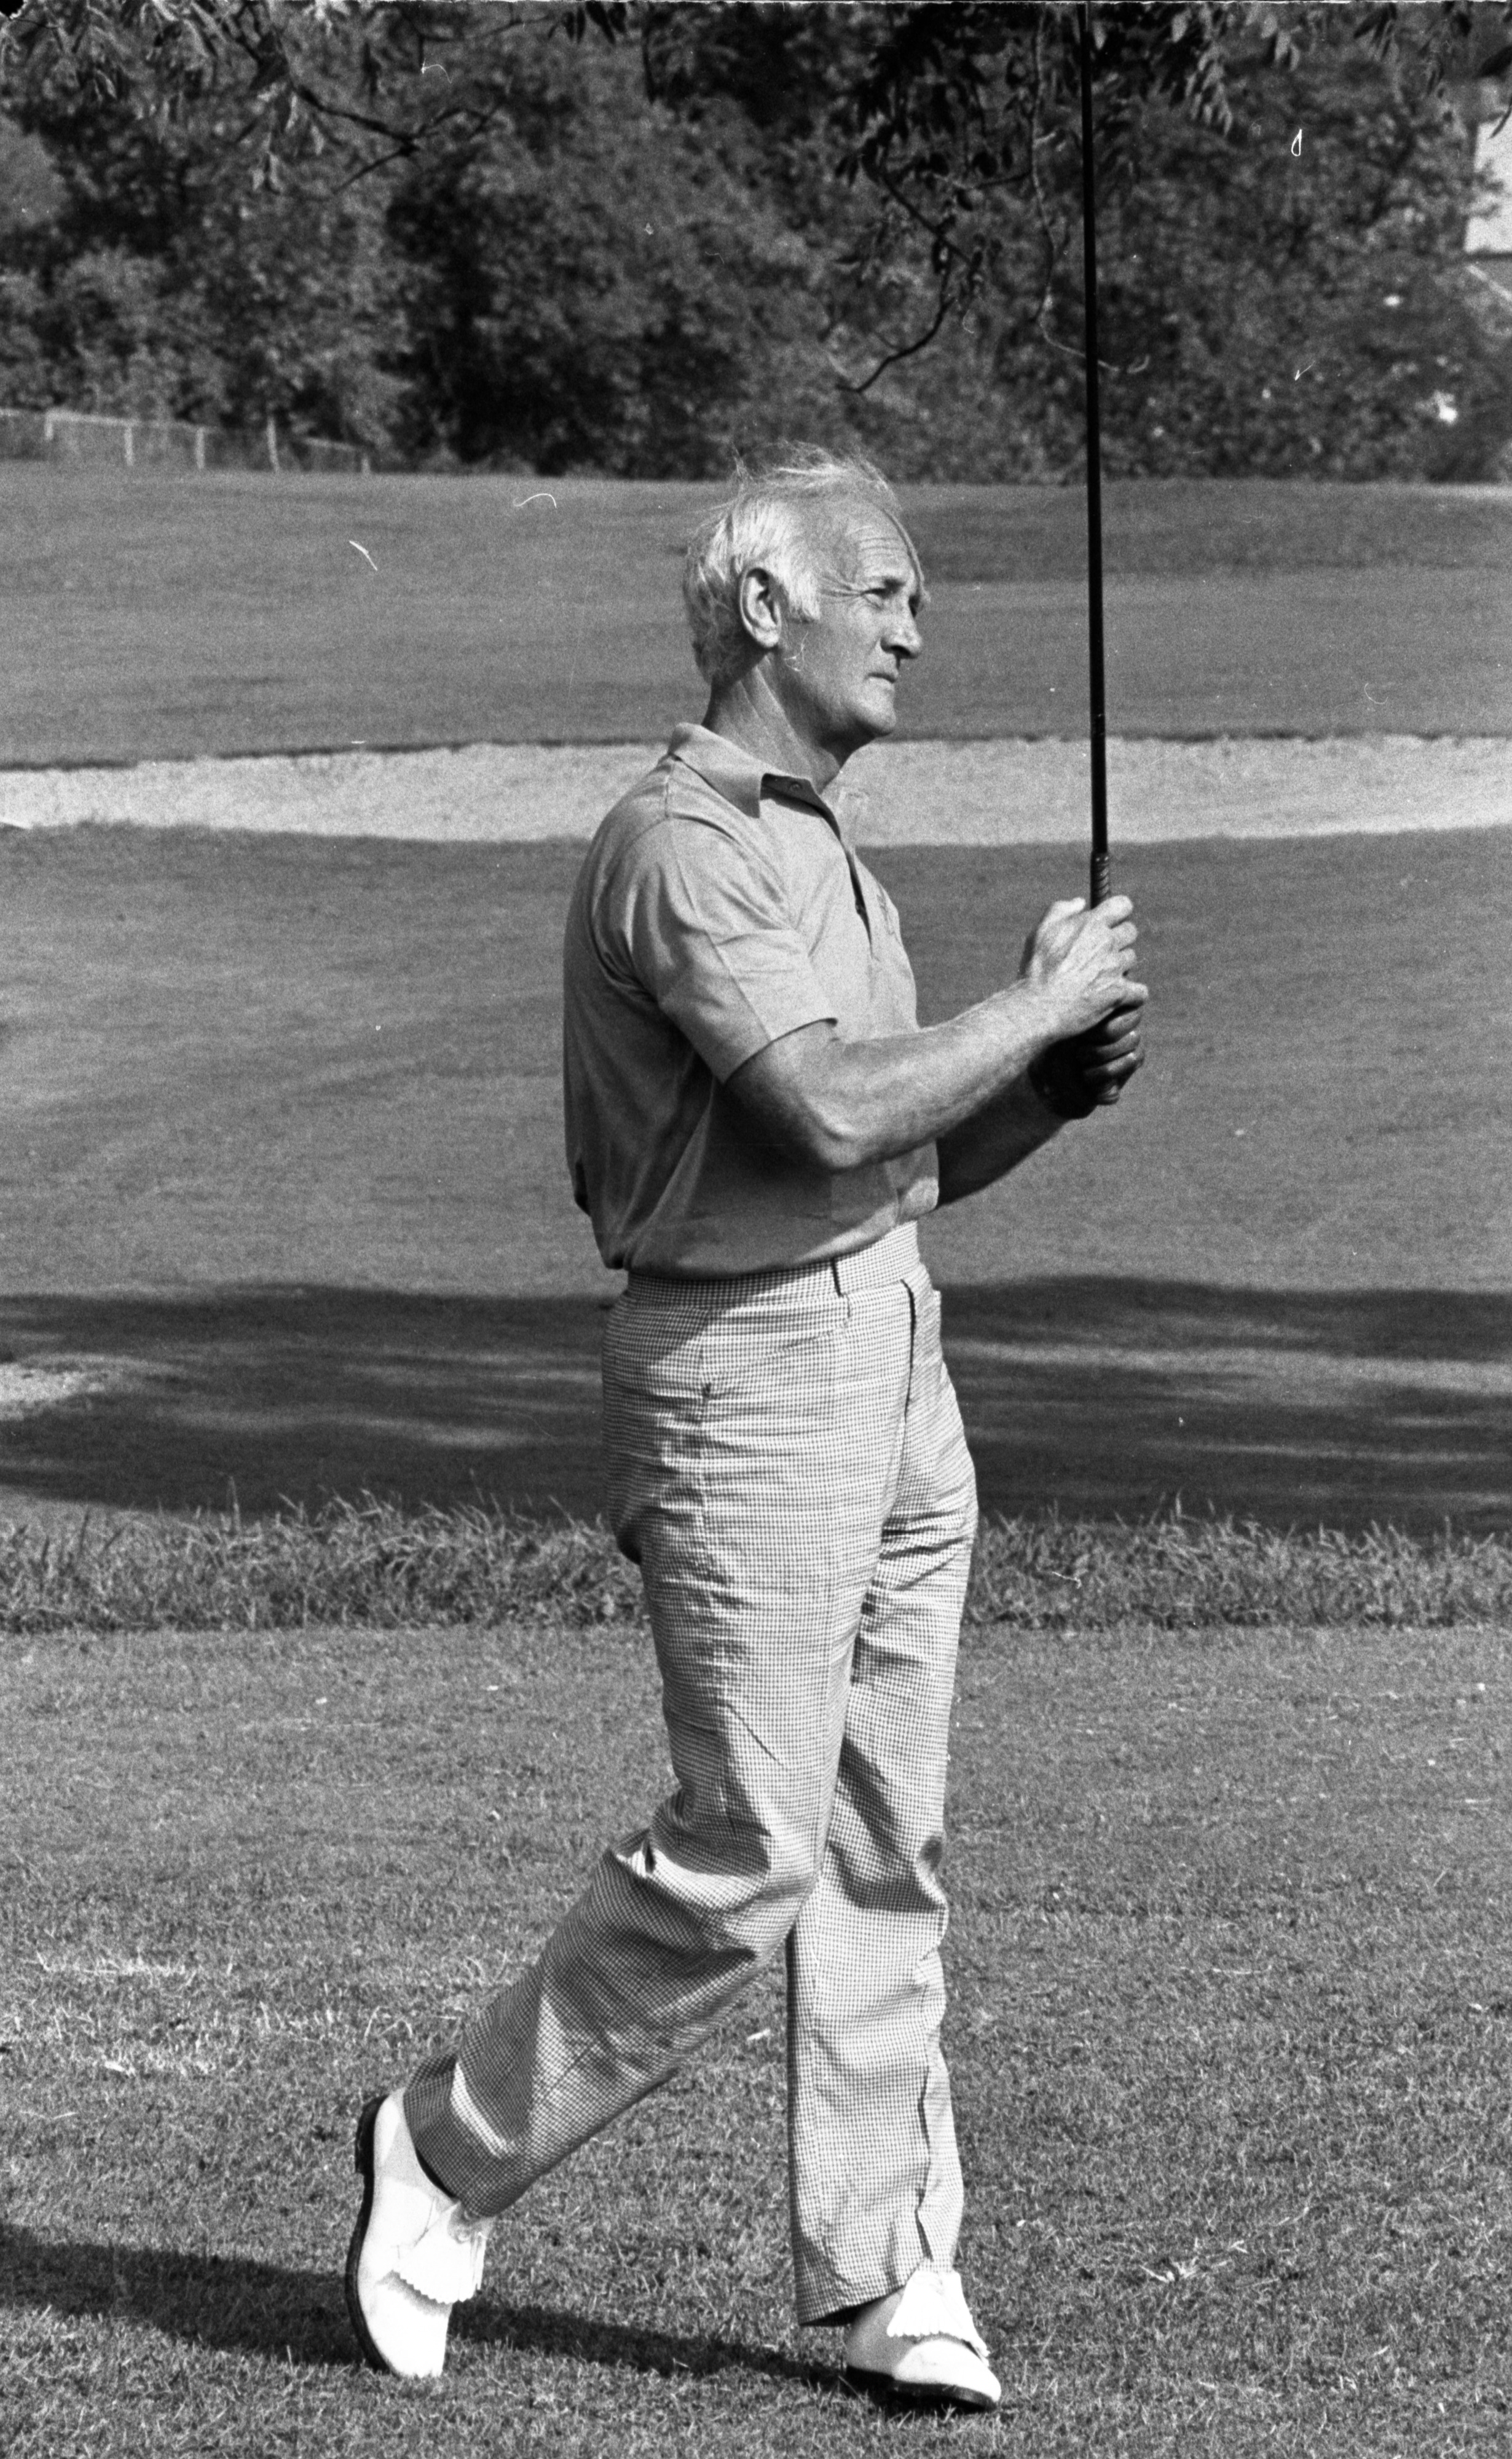 Wolverine Football Star Tom Harmon Golfs University of Michigan Course, September 1974 image